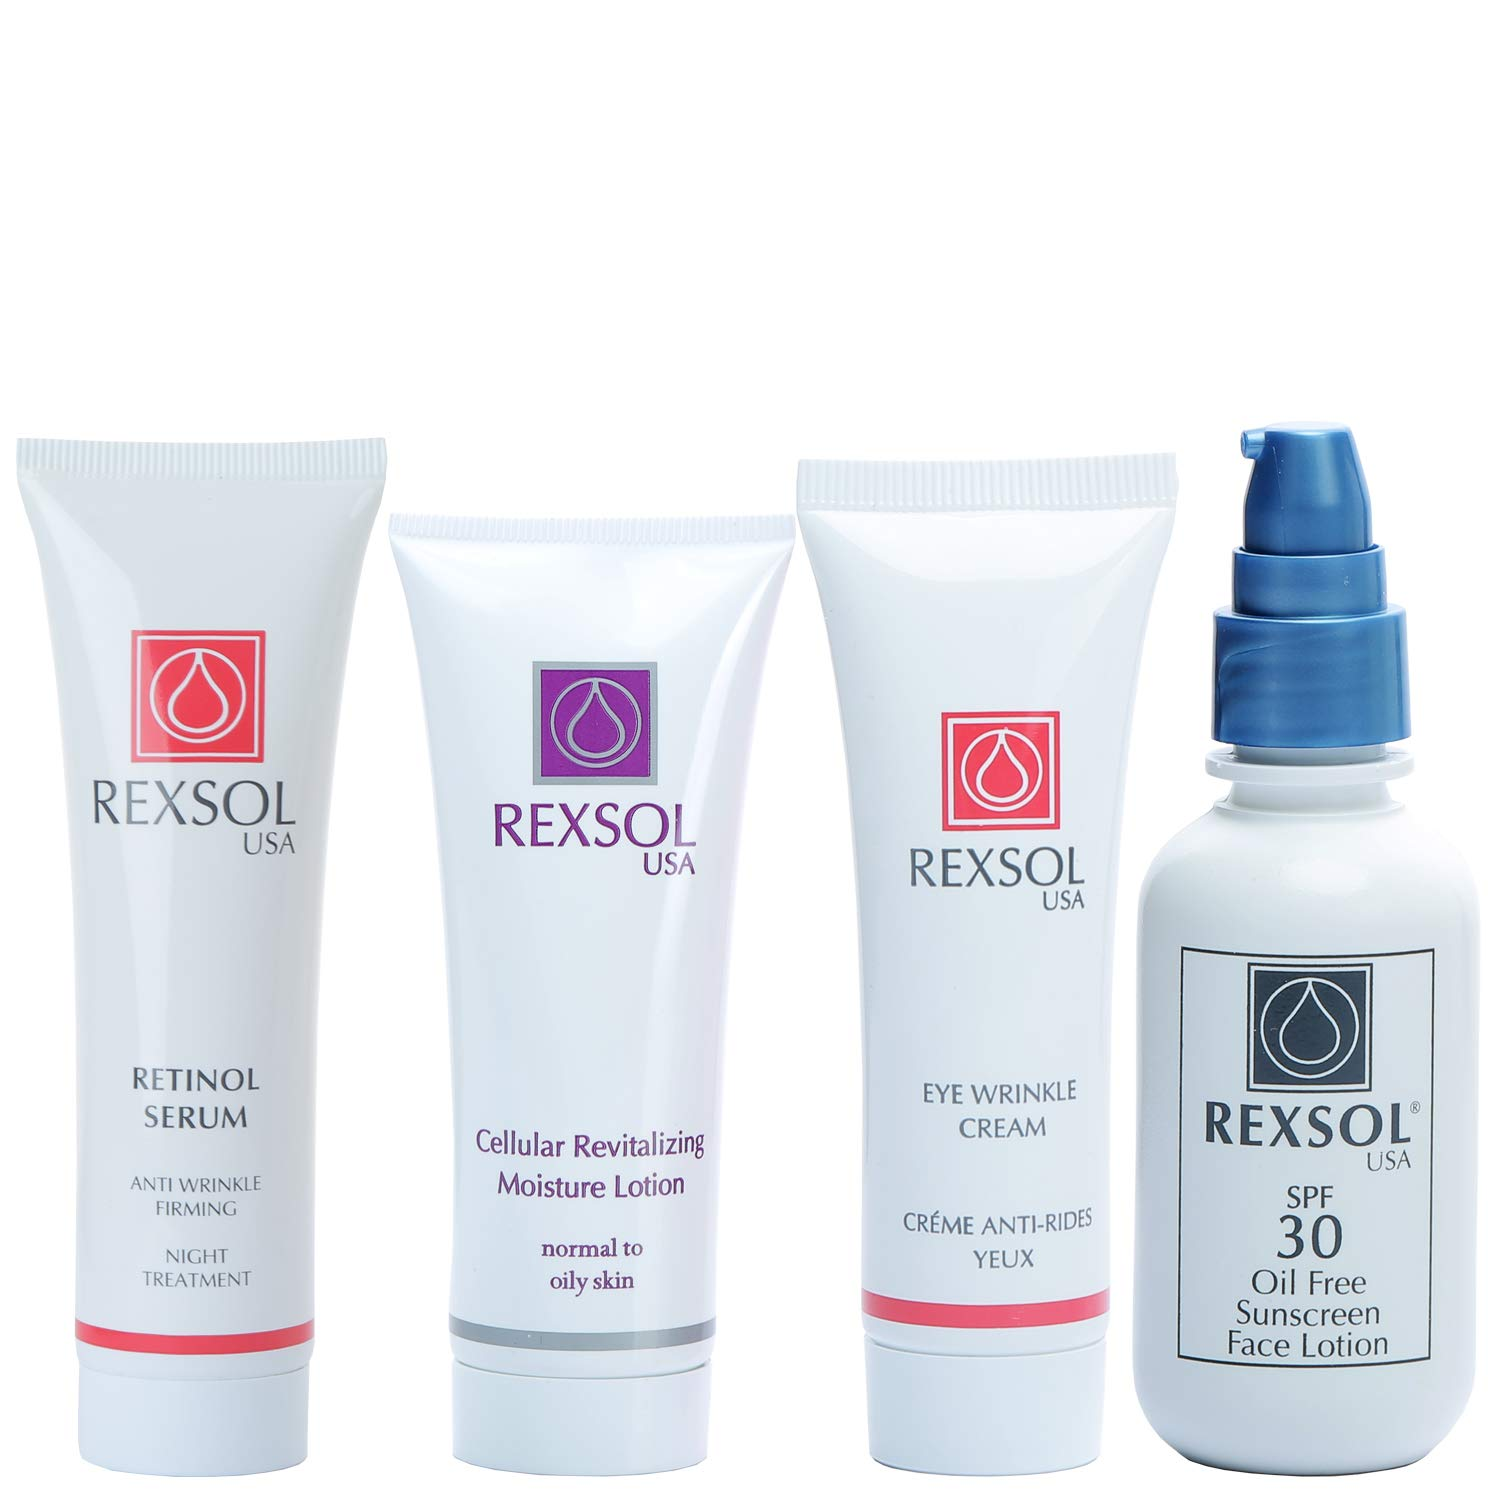 REXSOL YOUTH COLLECTION